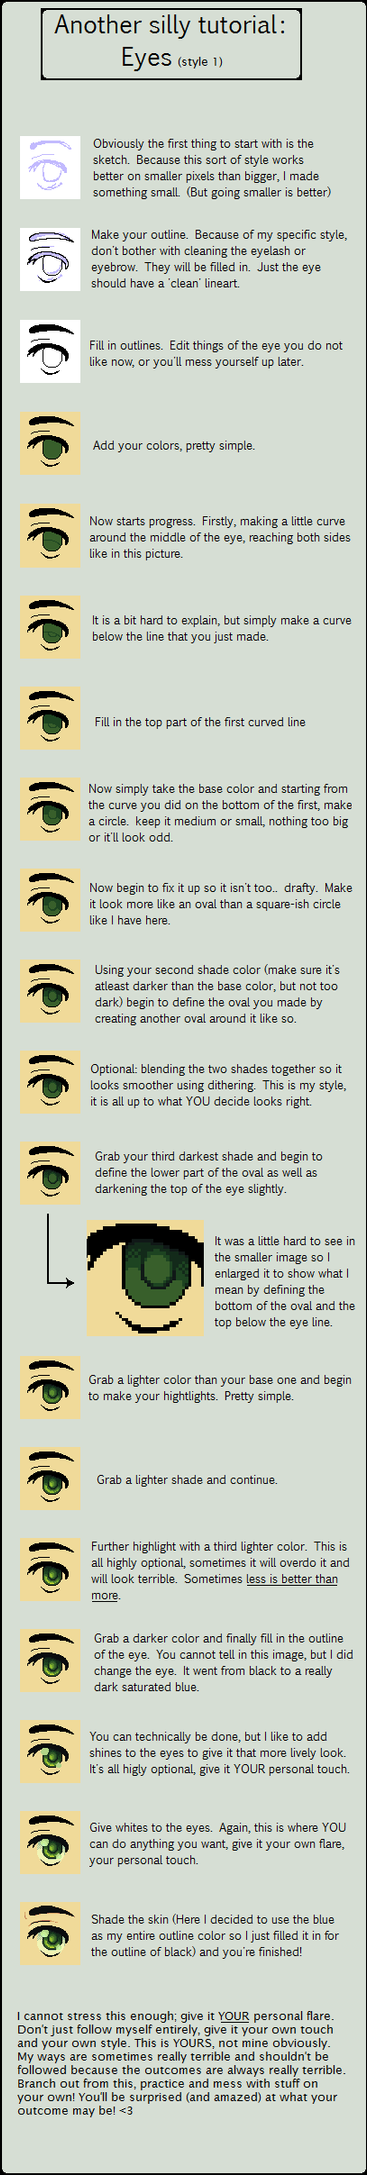 Eye style 1 - tutorial by grangerpixel